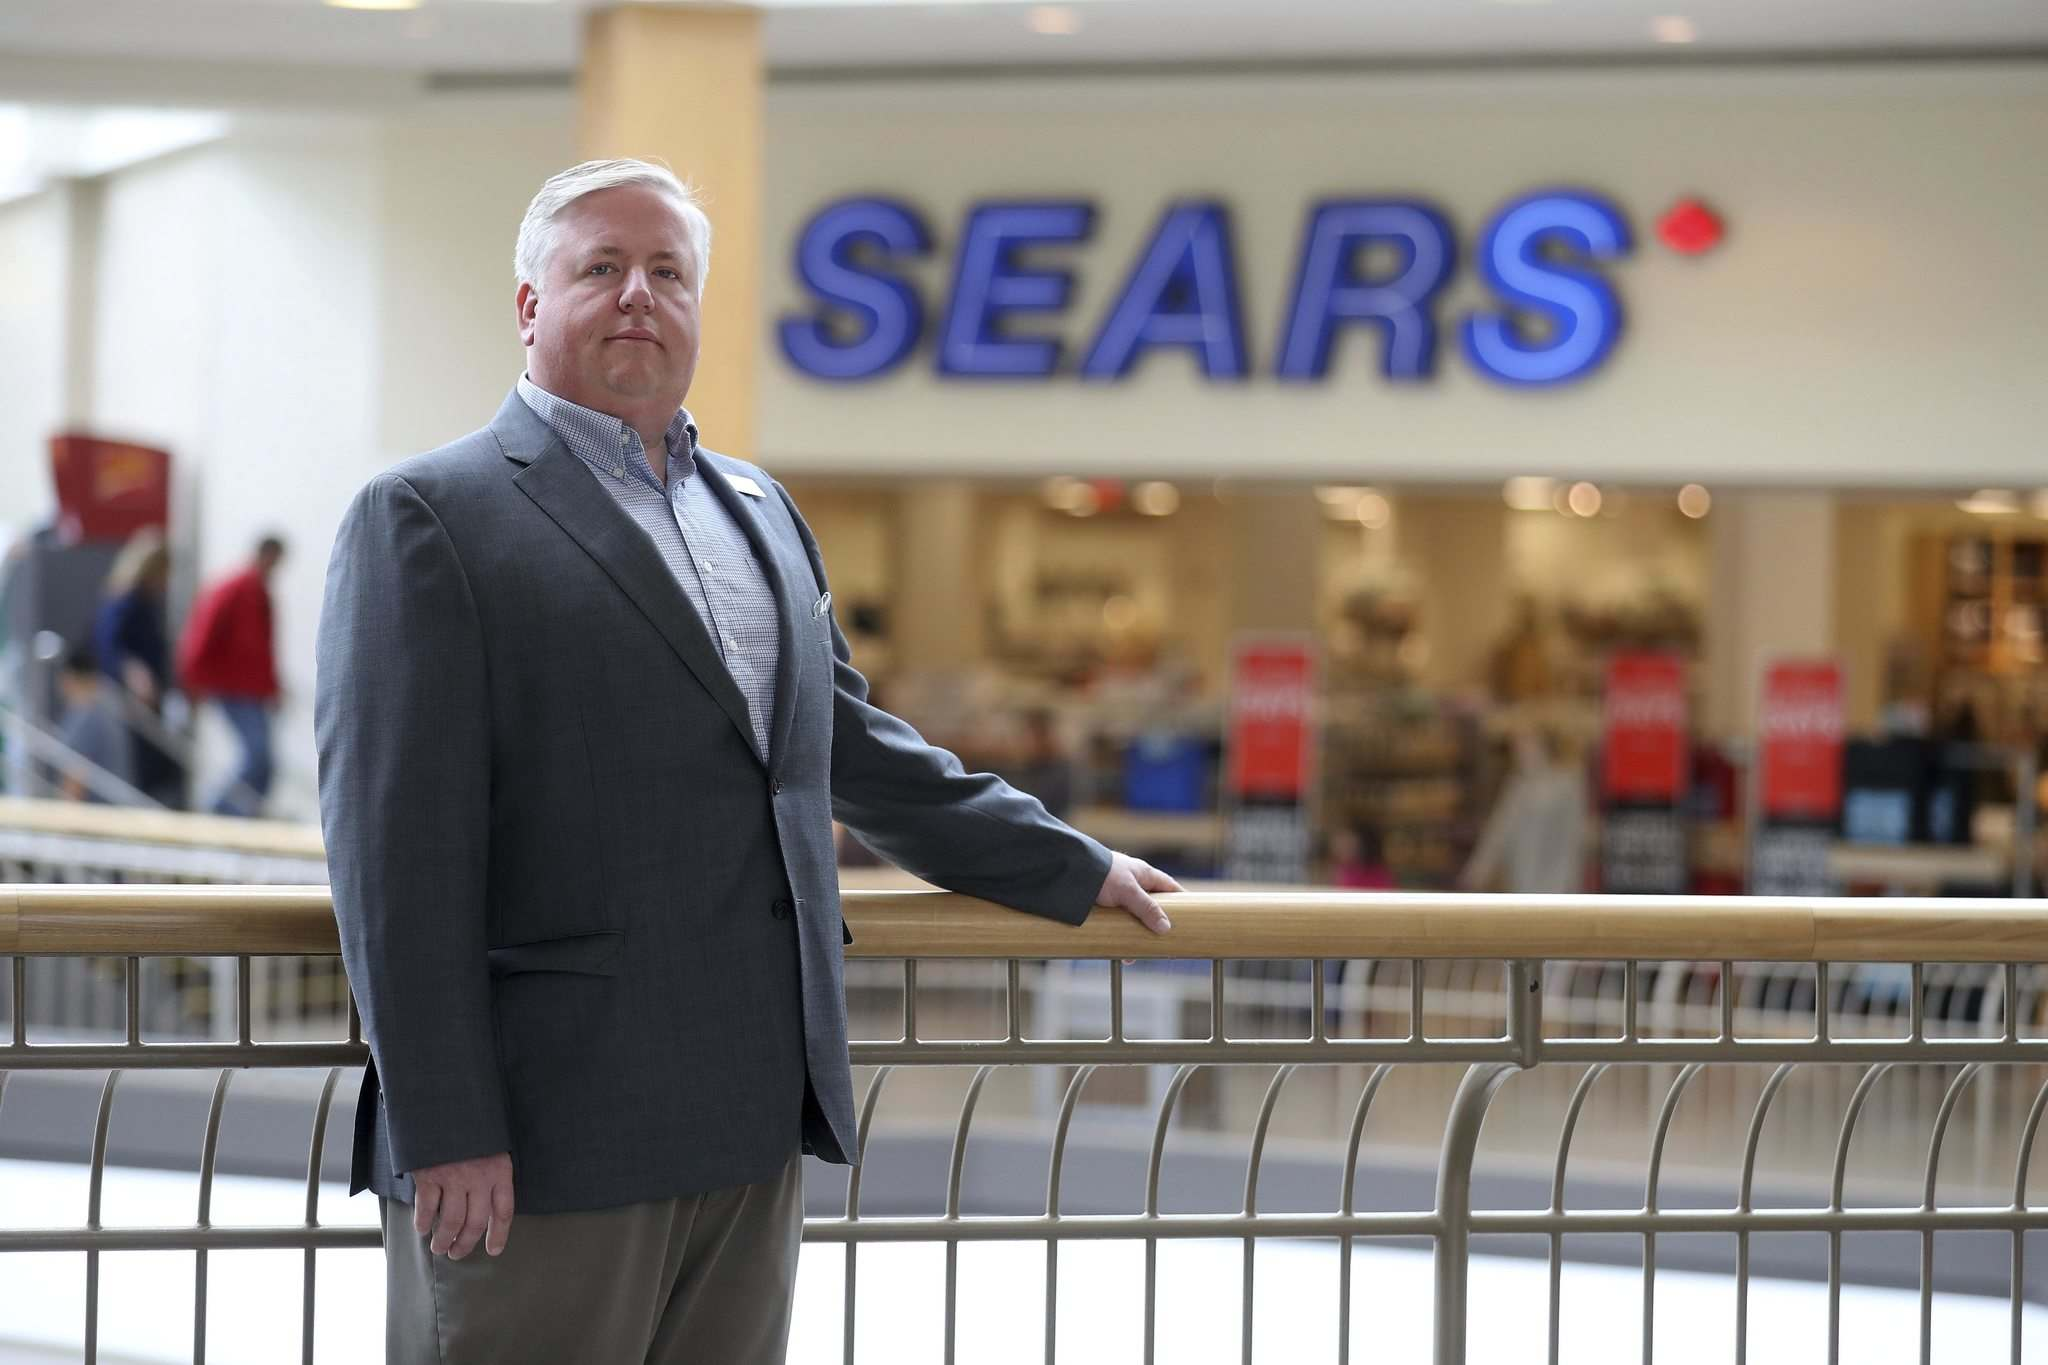 TREVOR HAGAN / WINNIPEG FREE PRESS</p><p>CF Polo Park general manager Peter Havens says subdividing the Sears space would enable the mall to add a number of new retail tenants.</p>